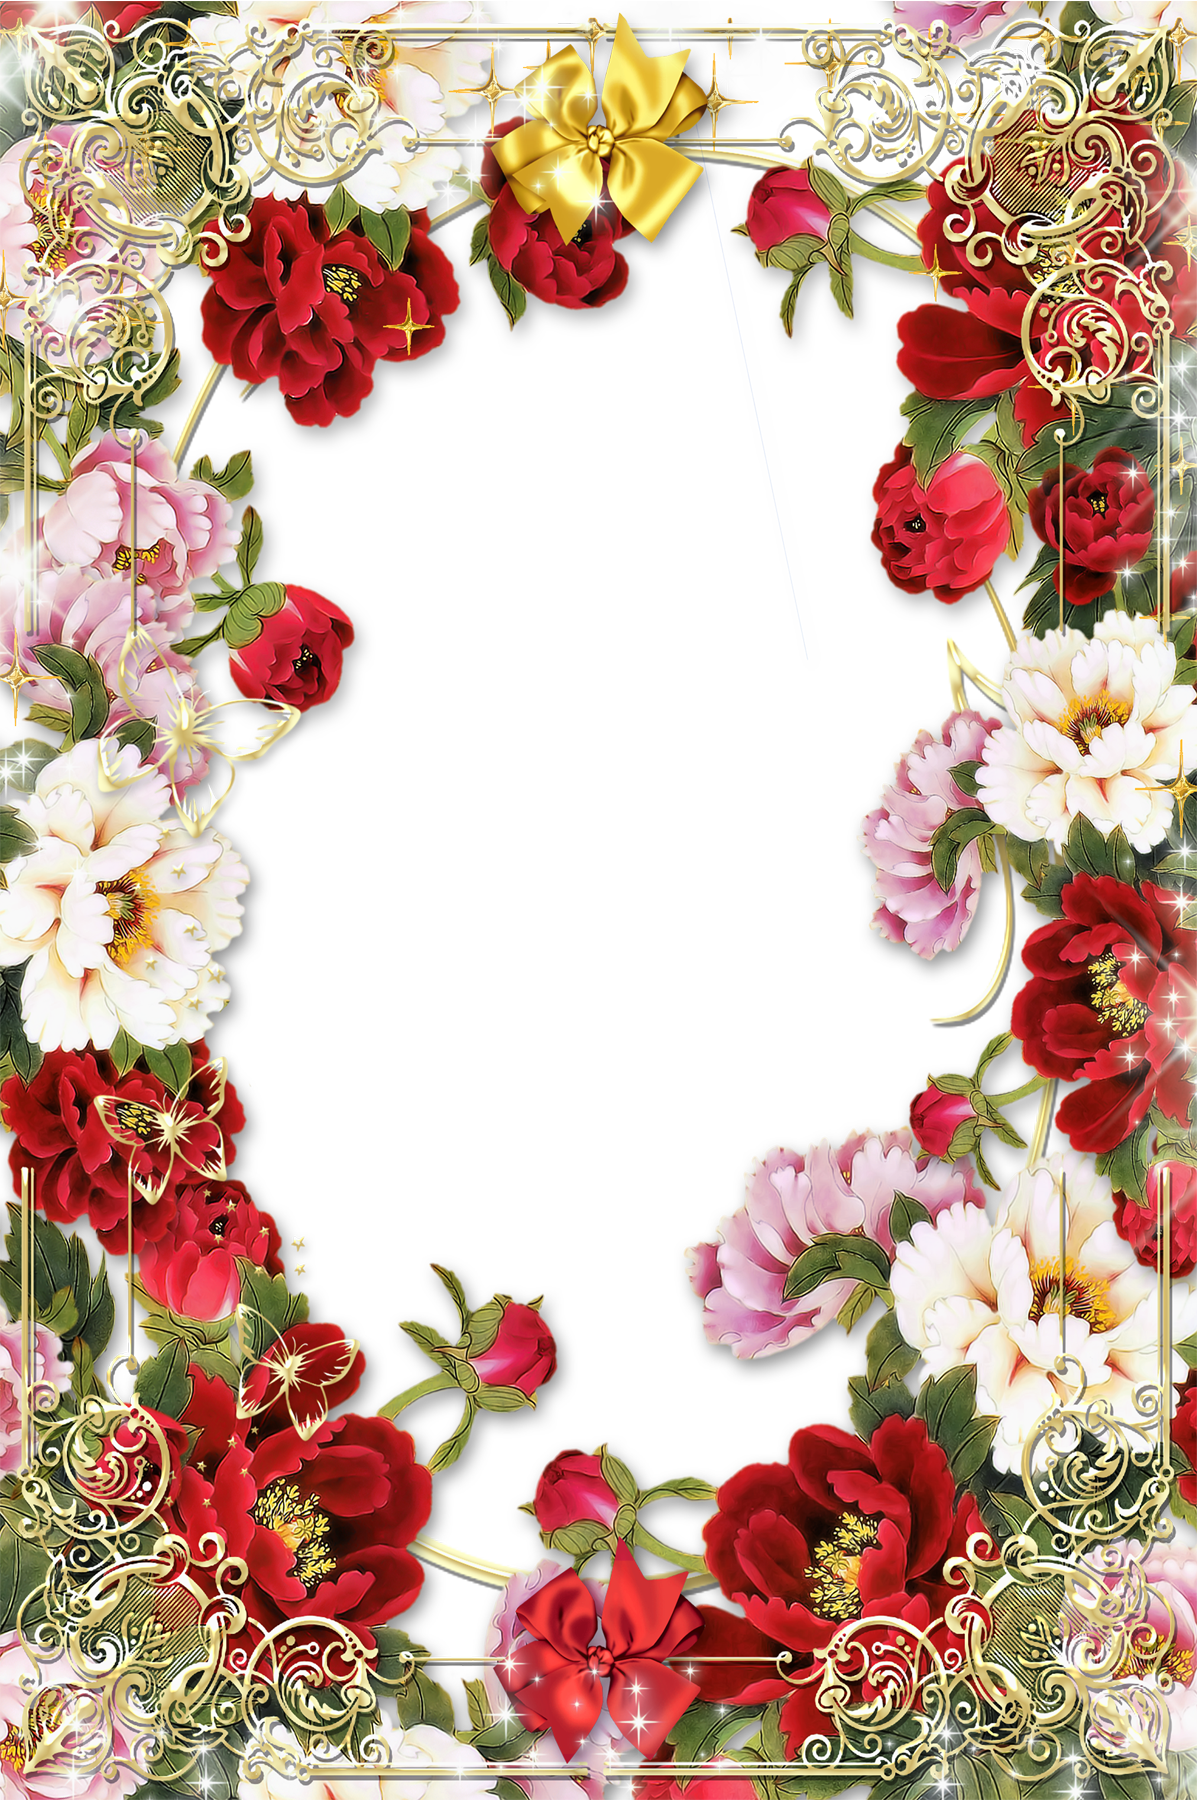 Flowers Picture Frame With Golden Floral Border Images 5642